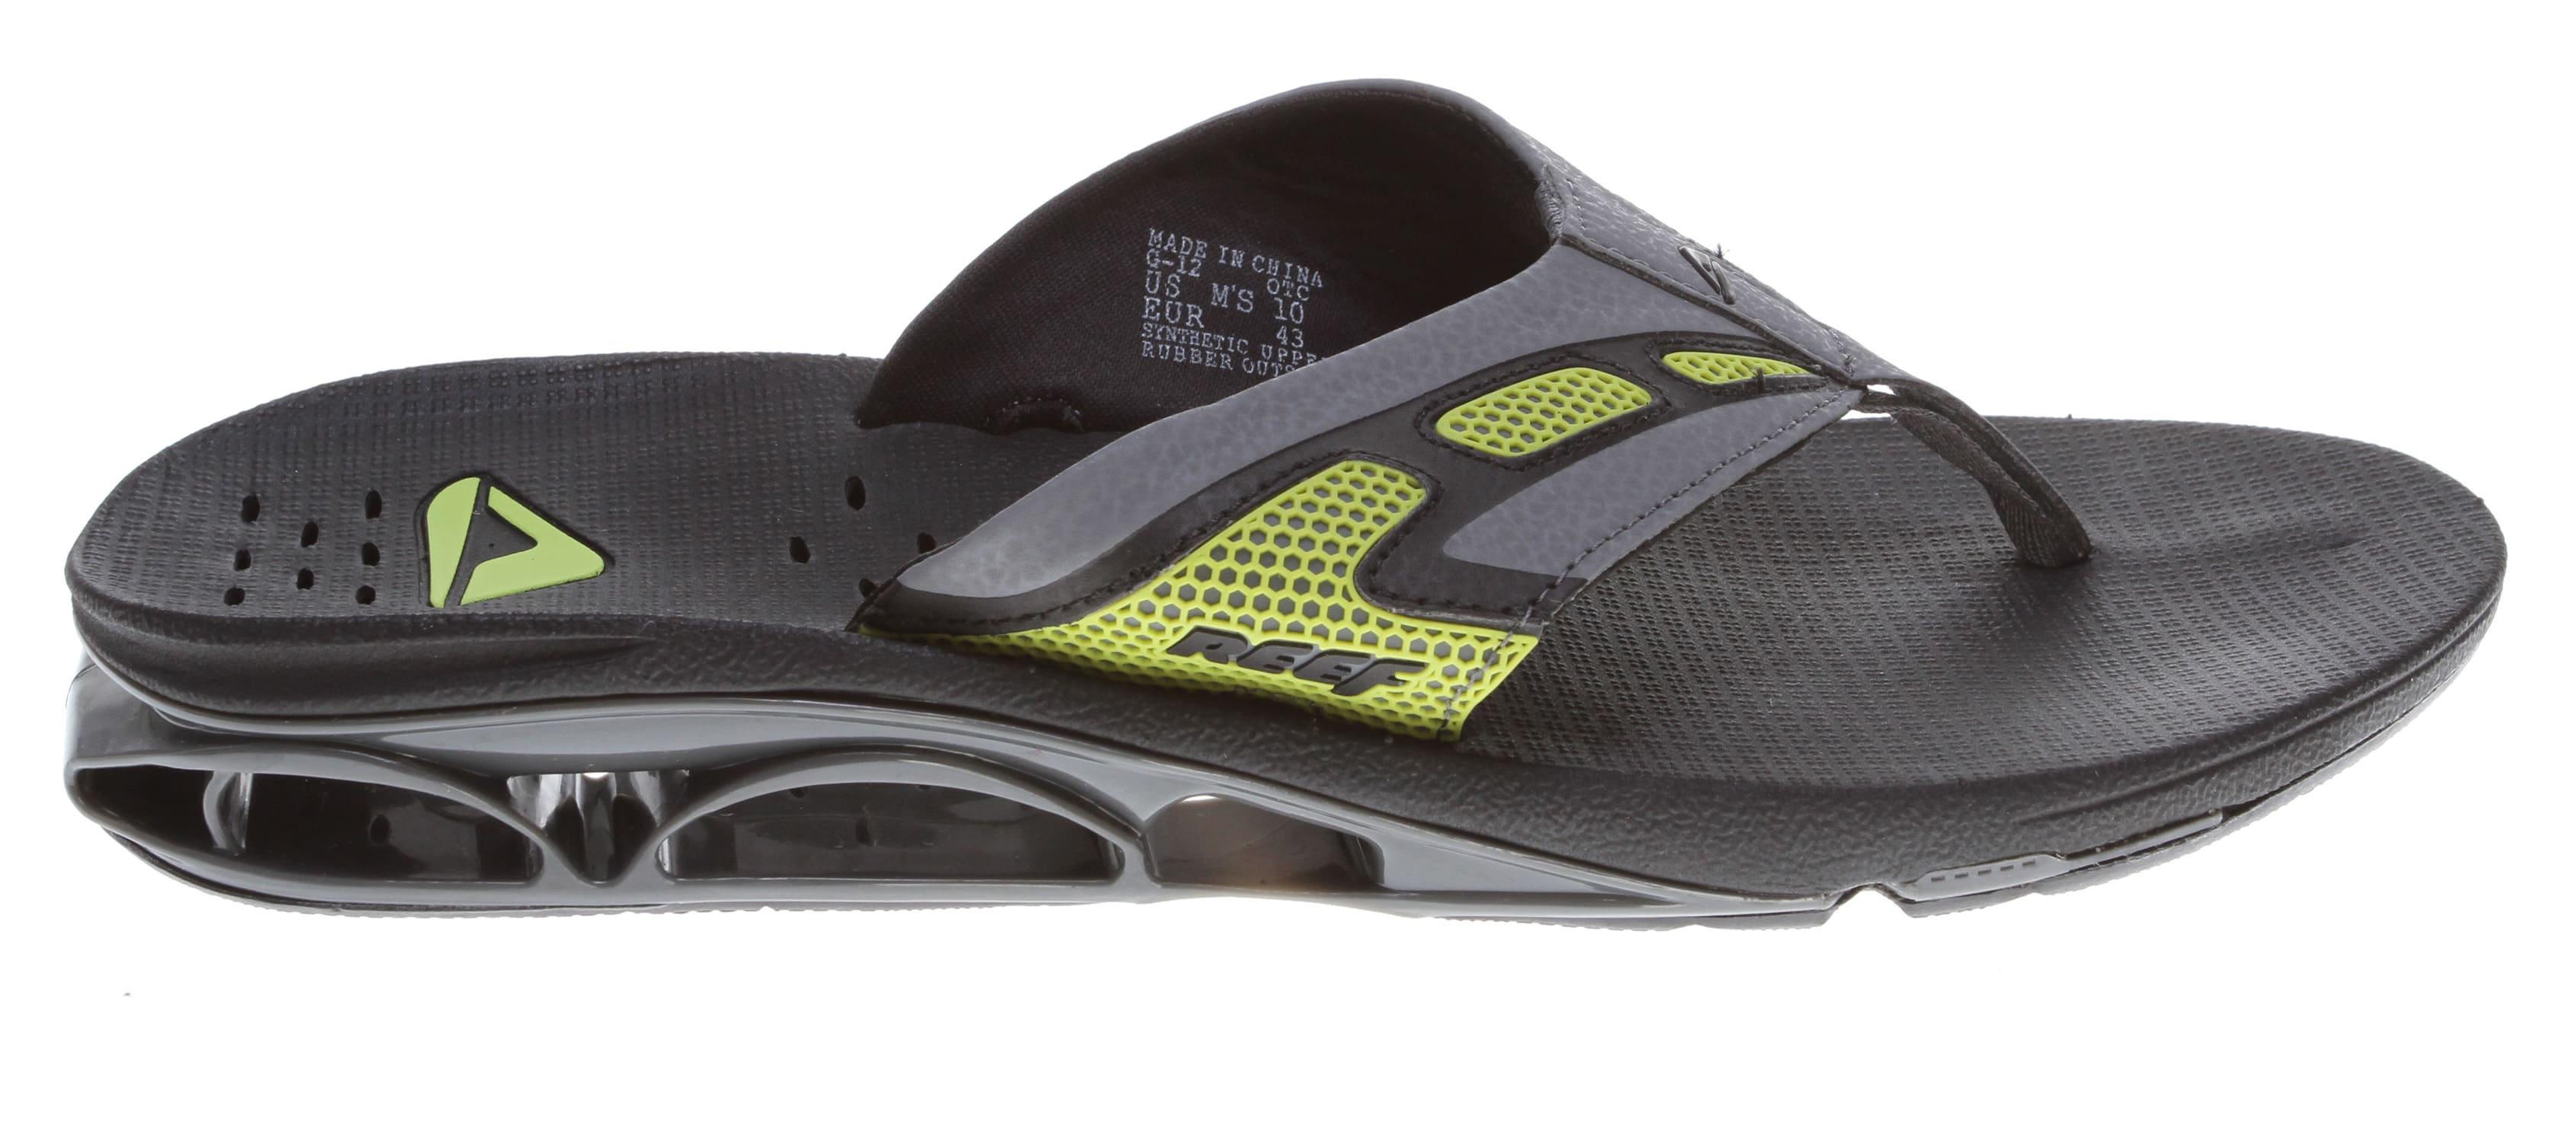 Reef Men S Mulligan Sandal Men Sandals